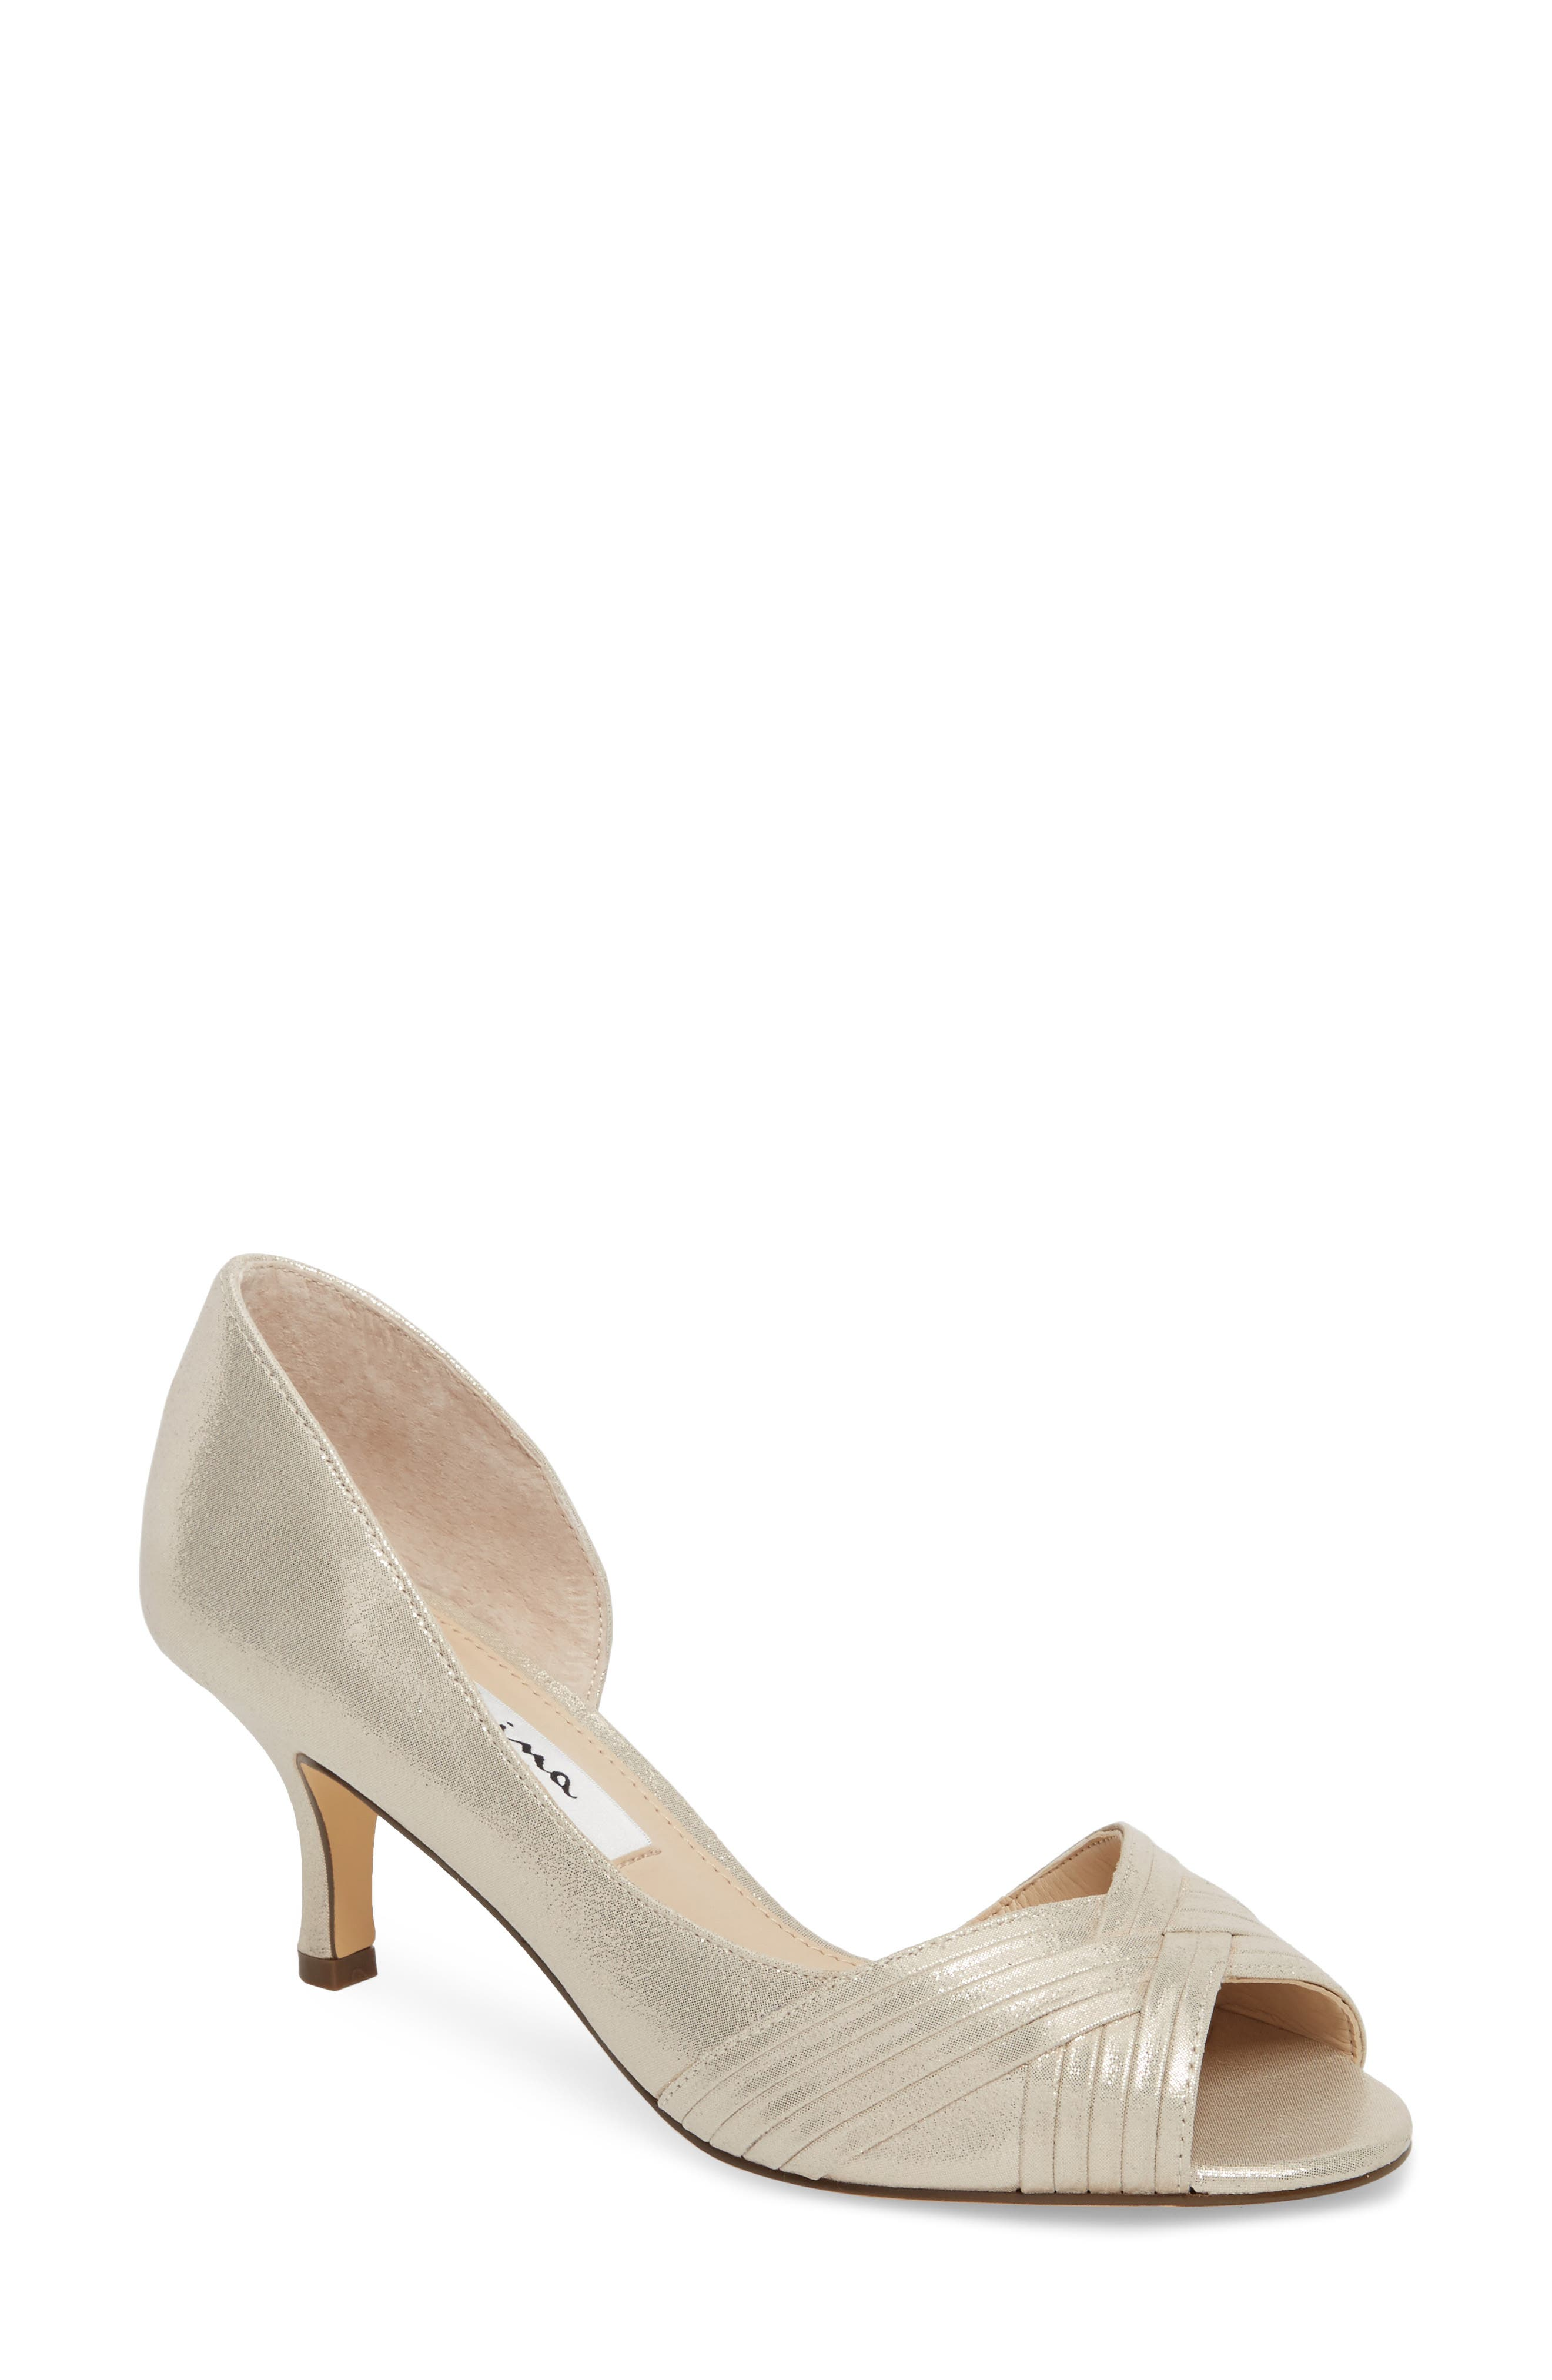 Alternate Image 1 Selected - Nina Contesa Open Toe Pump (Women)